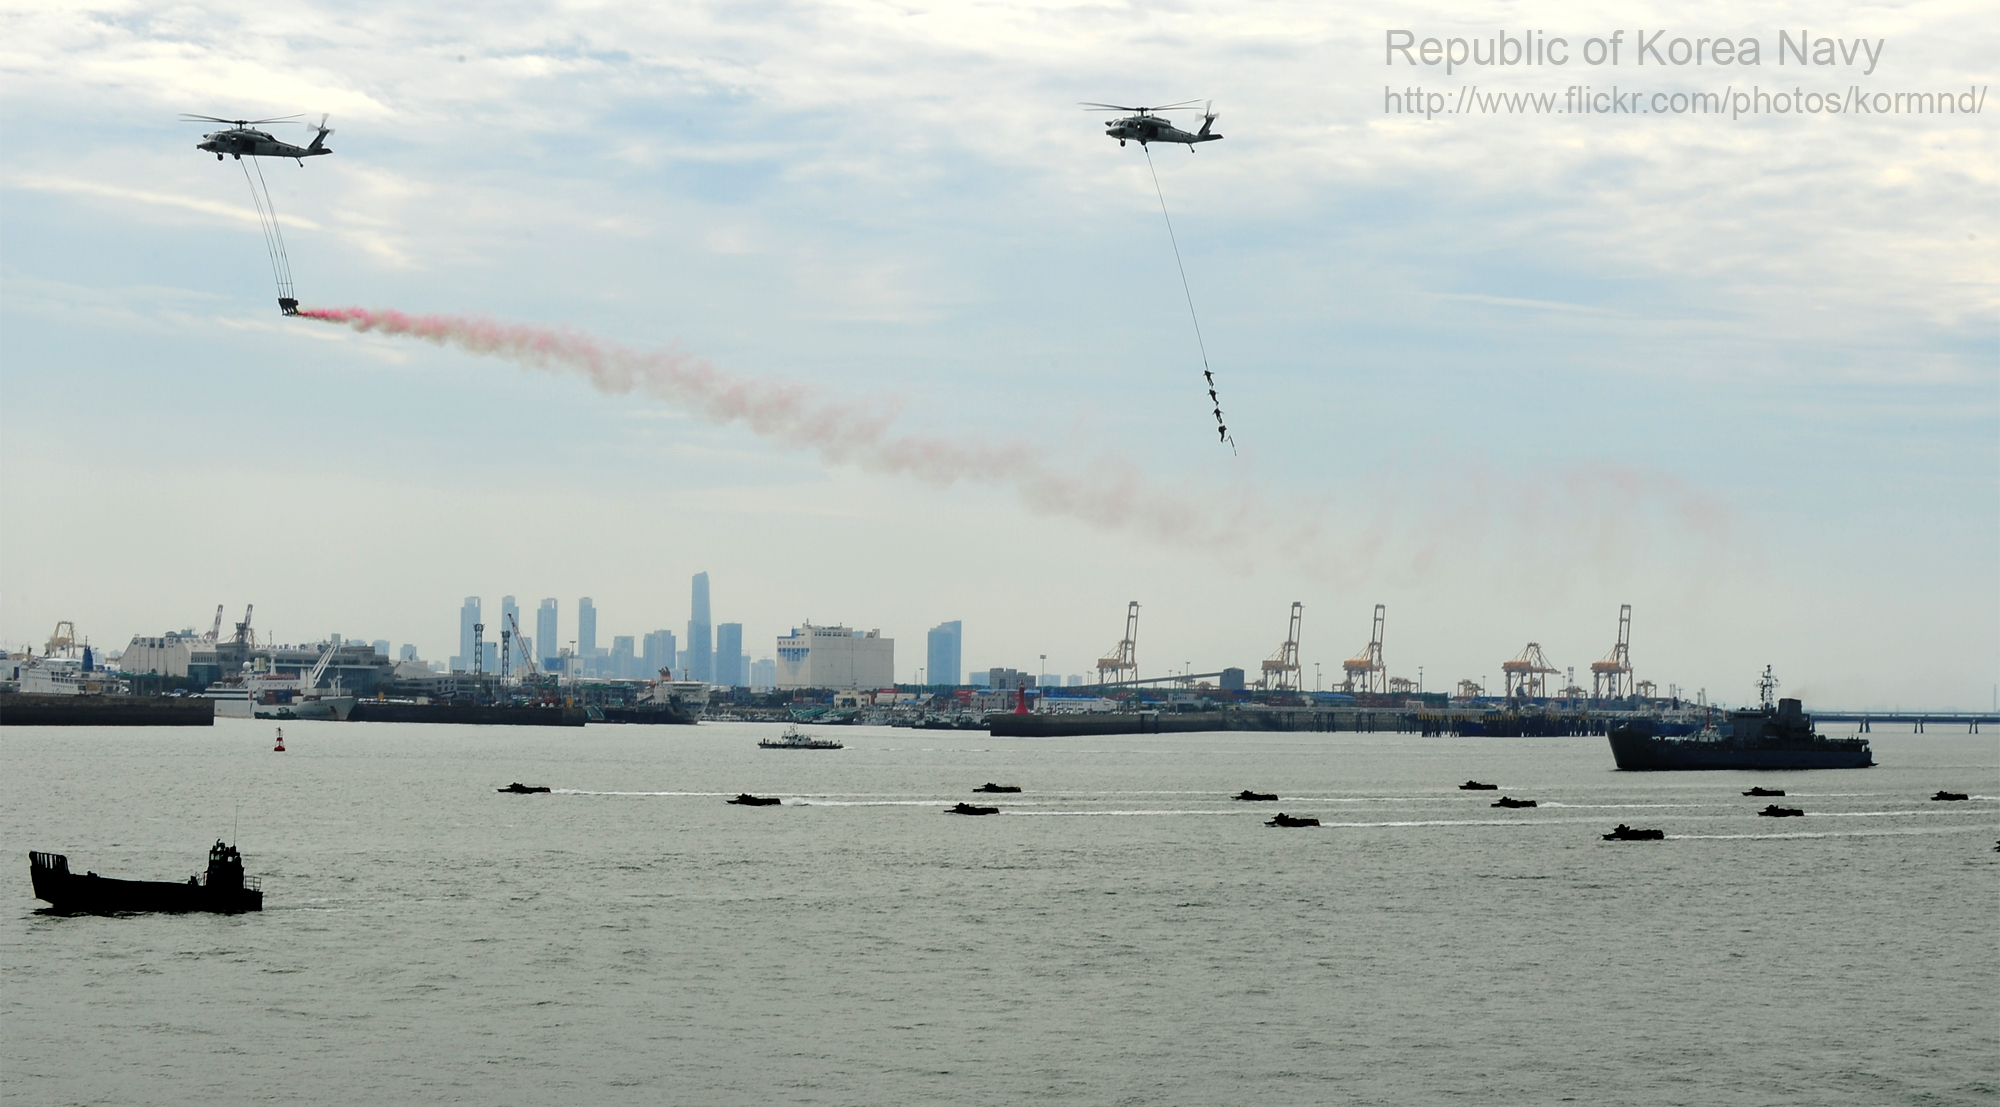 2012. 9. 인천상륙작전 전승행사 Rep. of Korea Navy 62th Anniversary of Incheon Landing Operation (7998837752).jpg